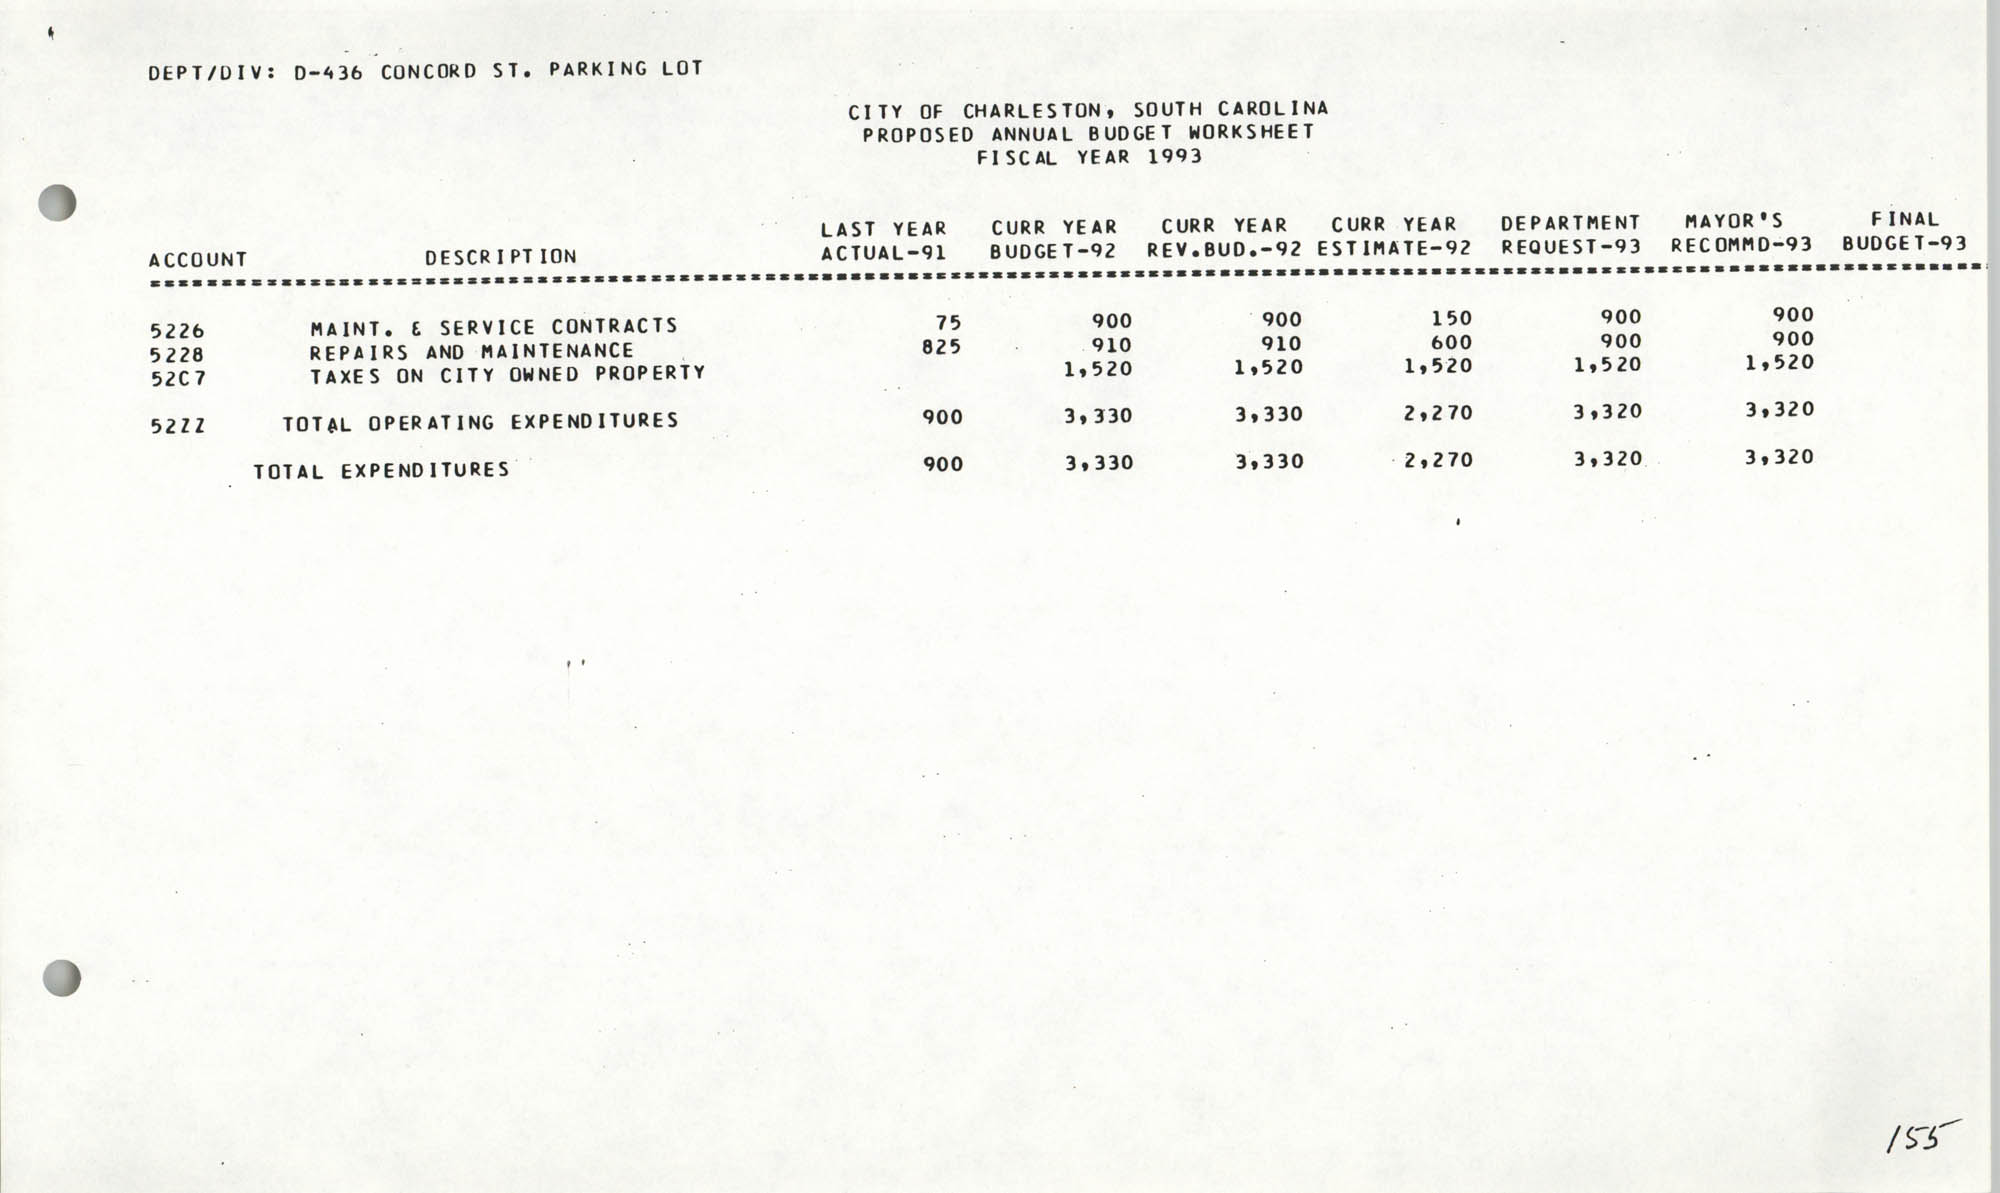 The City Council of Charleston, South Carolina, 1993 Budget, Page 155